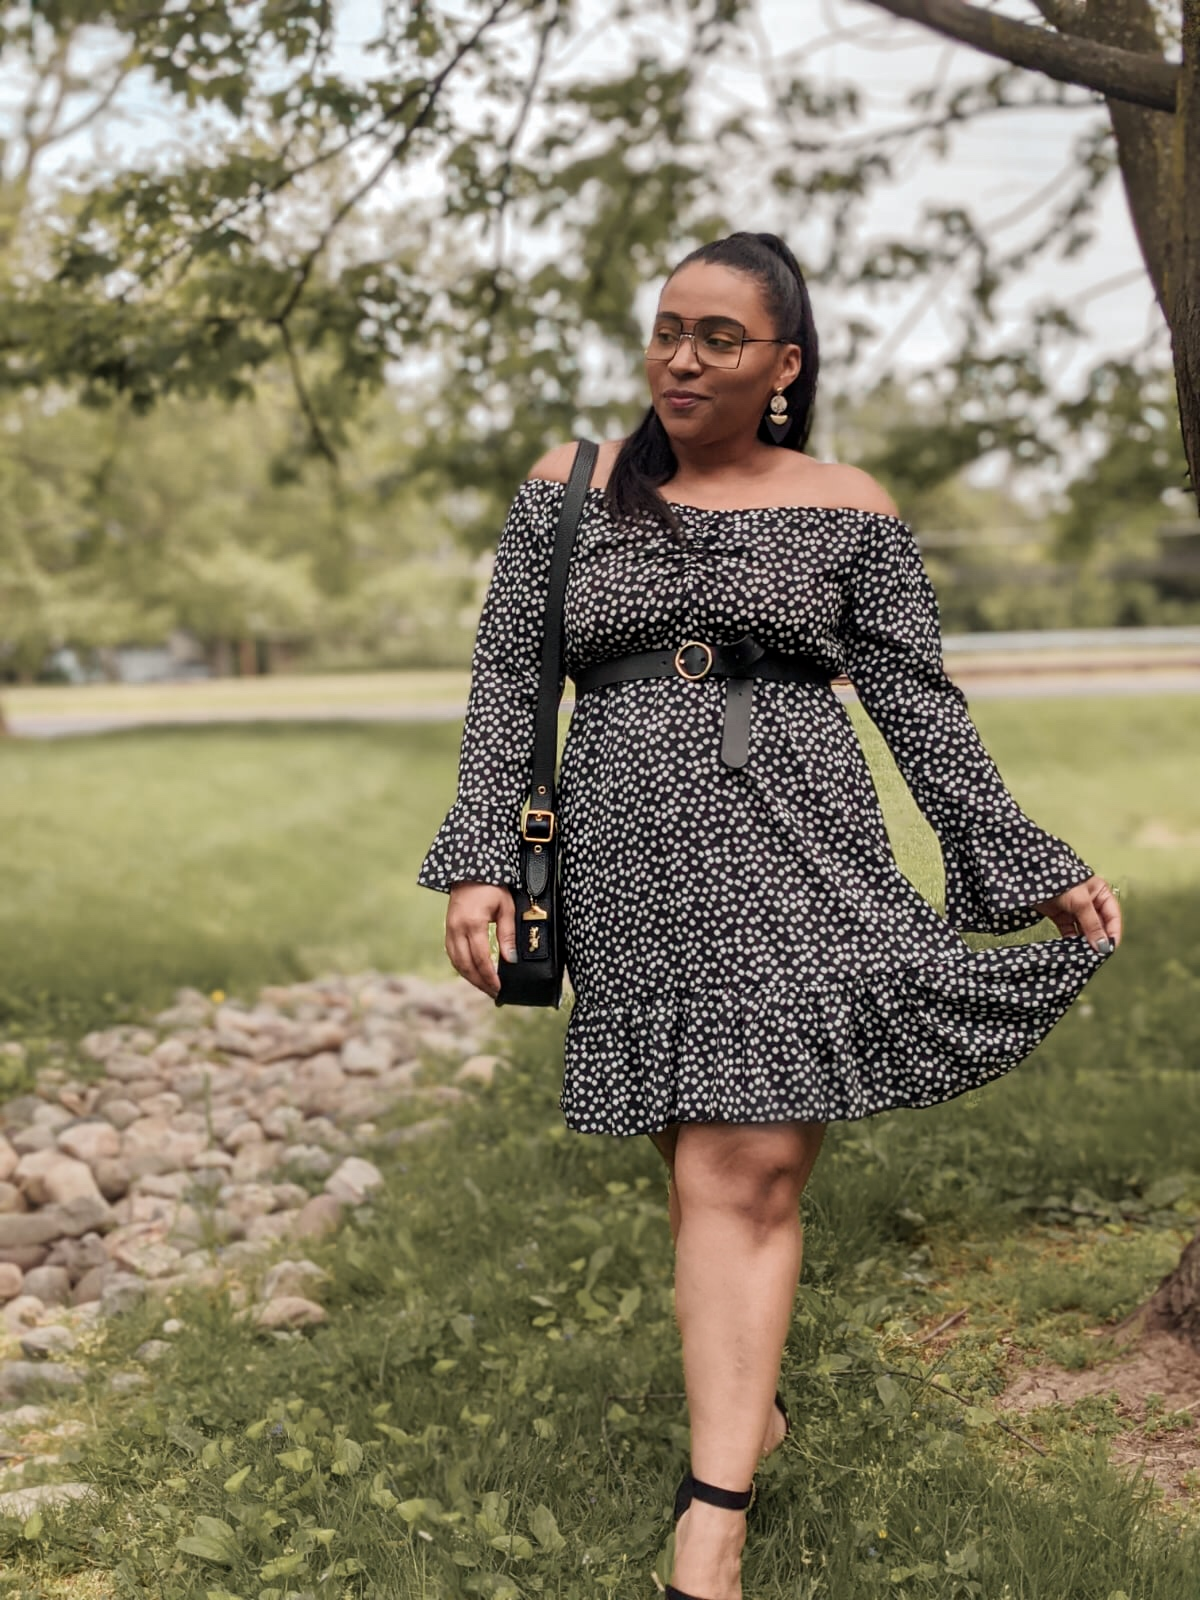 shein, shein reviews, shein dress, summer outfit ideas, pattys kloset, floral summer dresses, off the shoulder dress